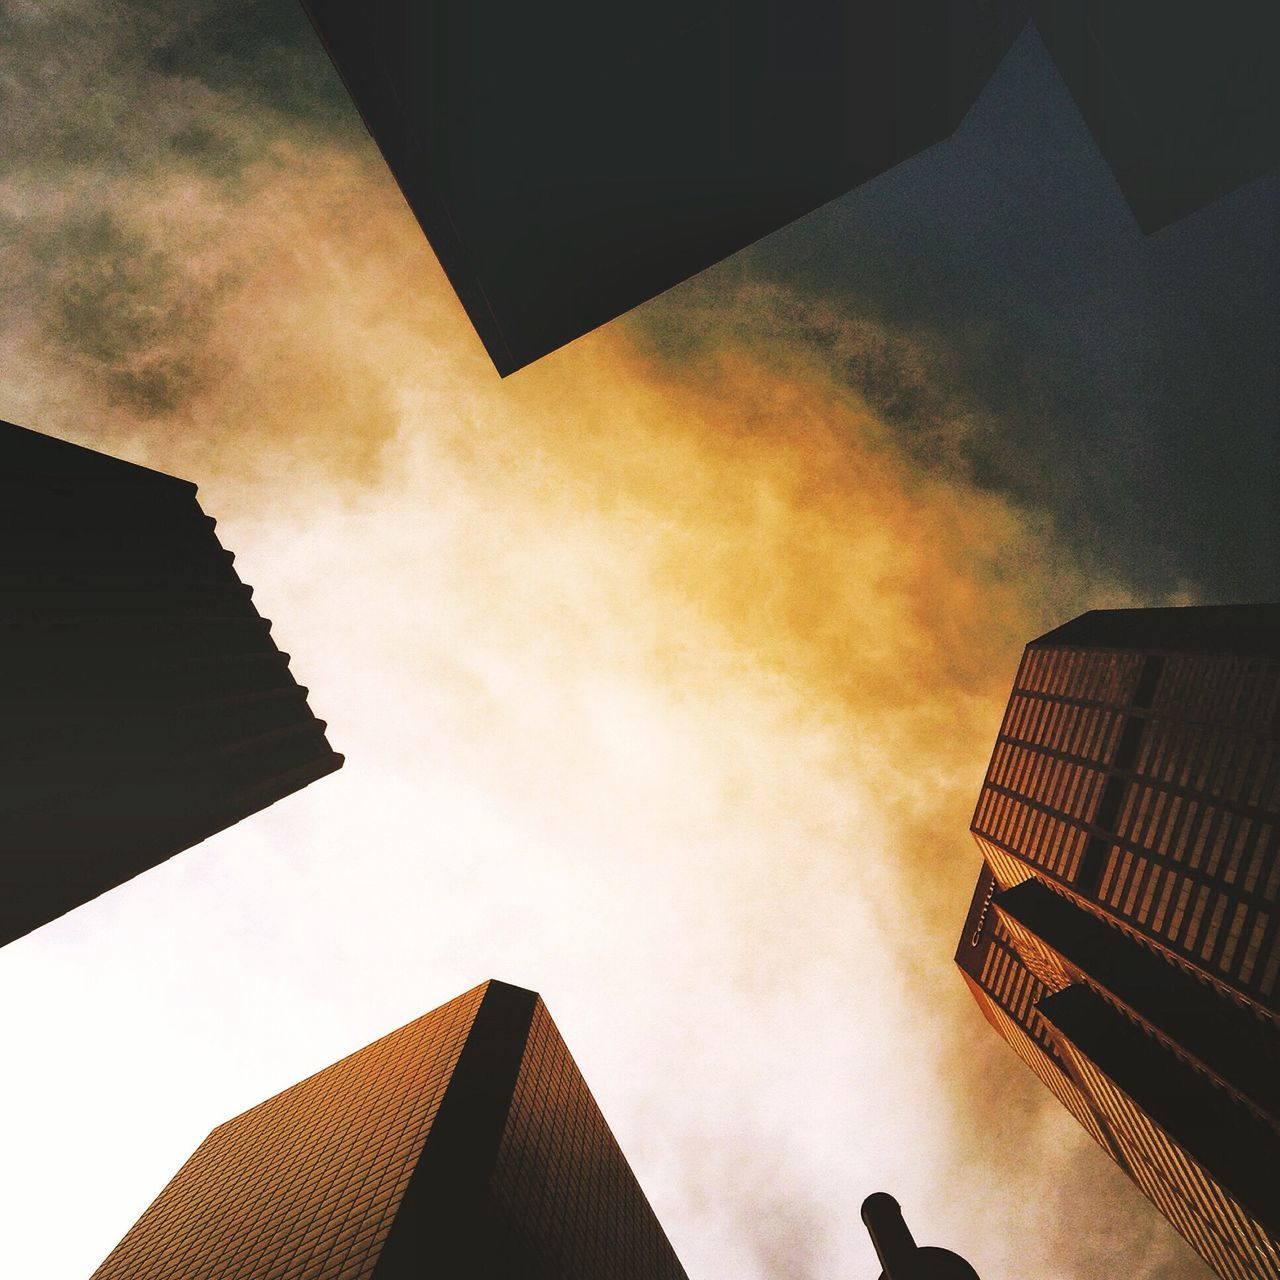 Building Exterior Built Structure Architecture Sky Low Angle View Cloud - Sky No People Outdoors City Day Nature Colorado Denver Lookingup Look Up And Thrive